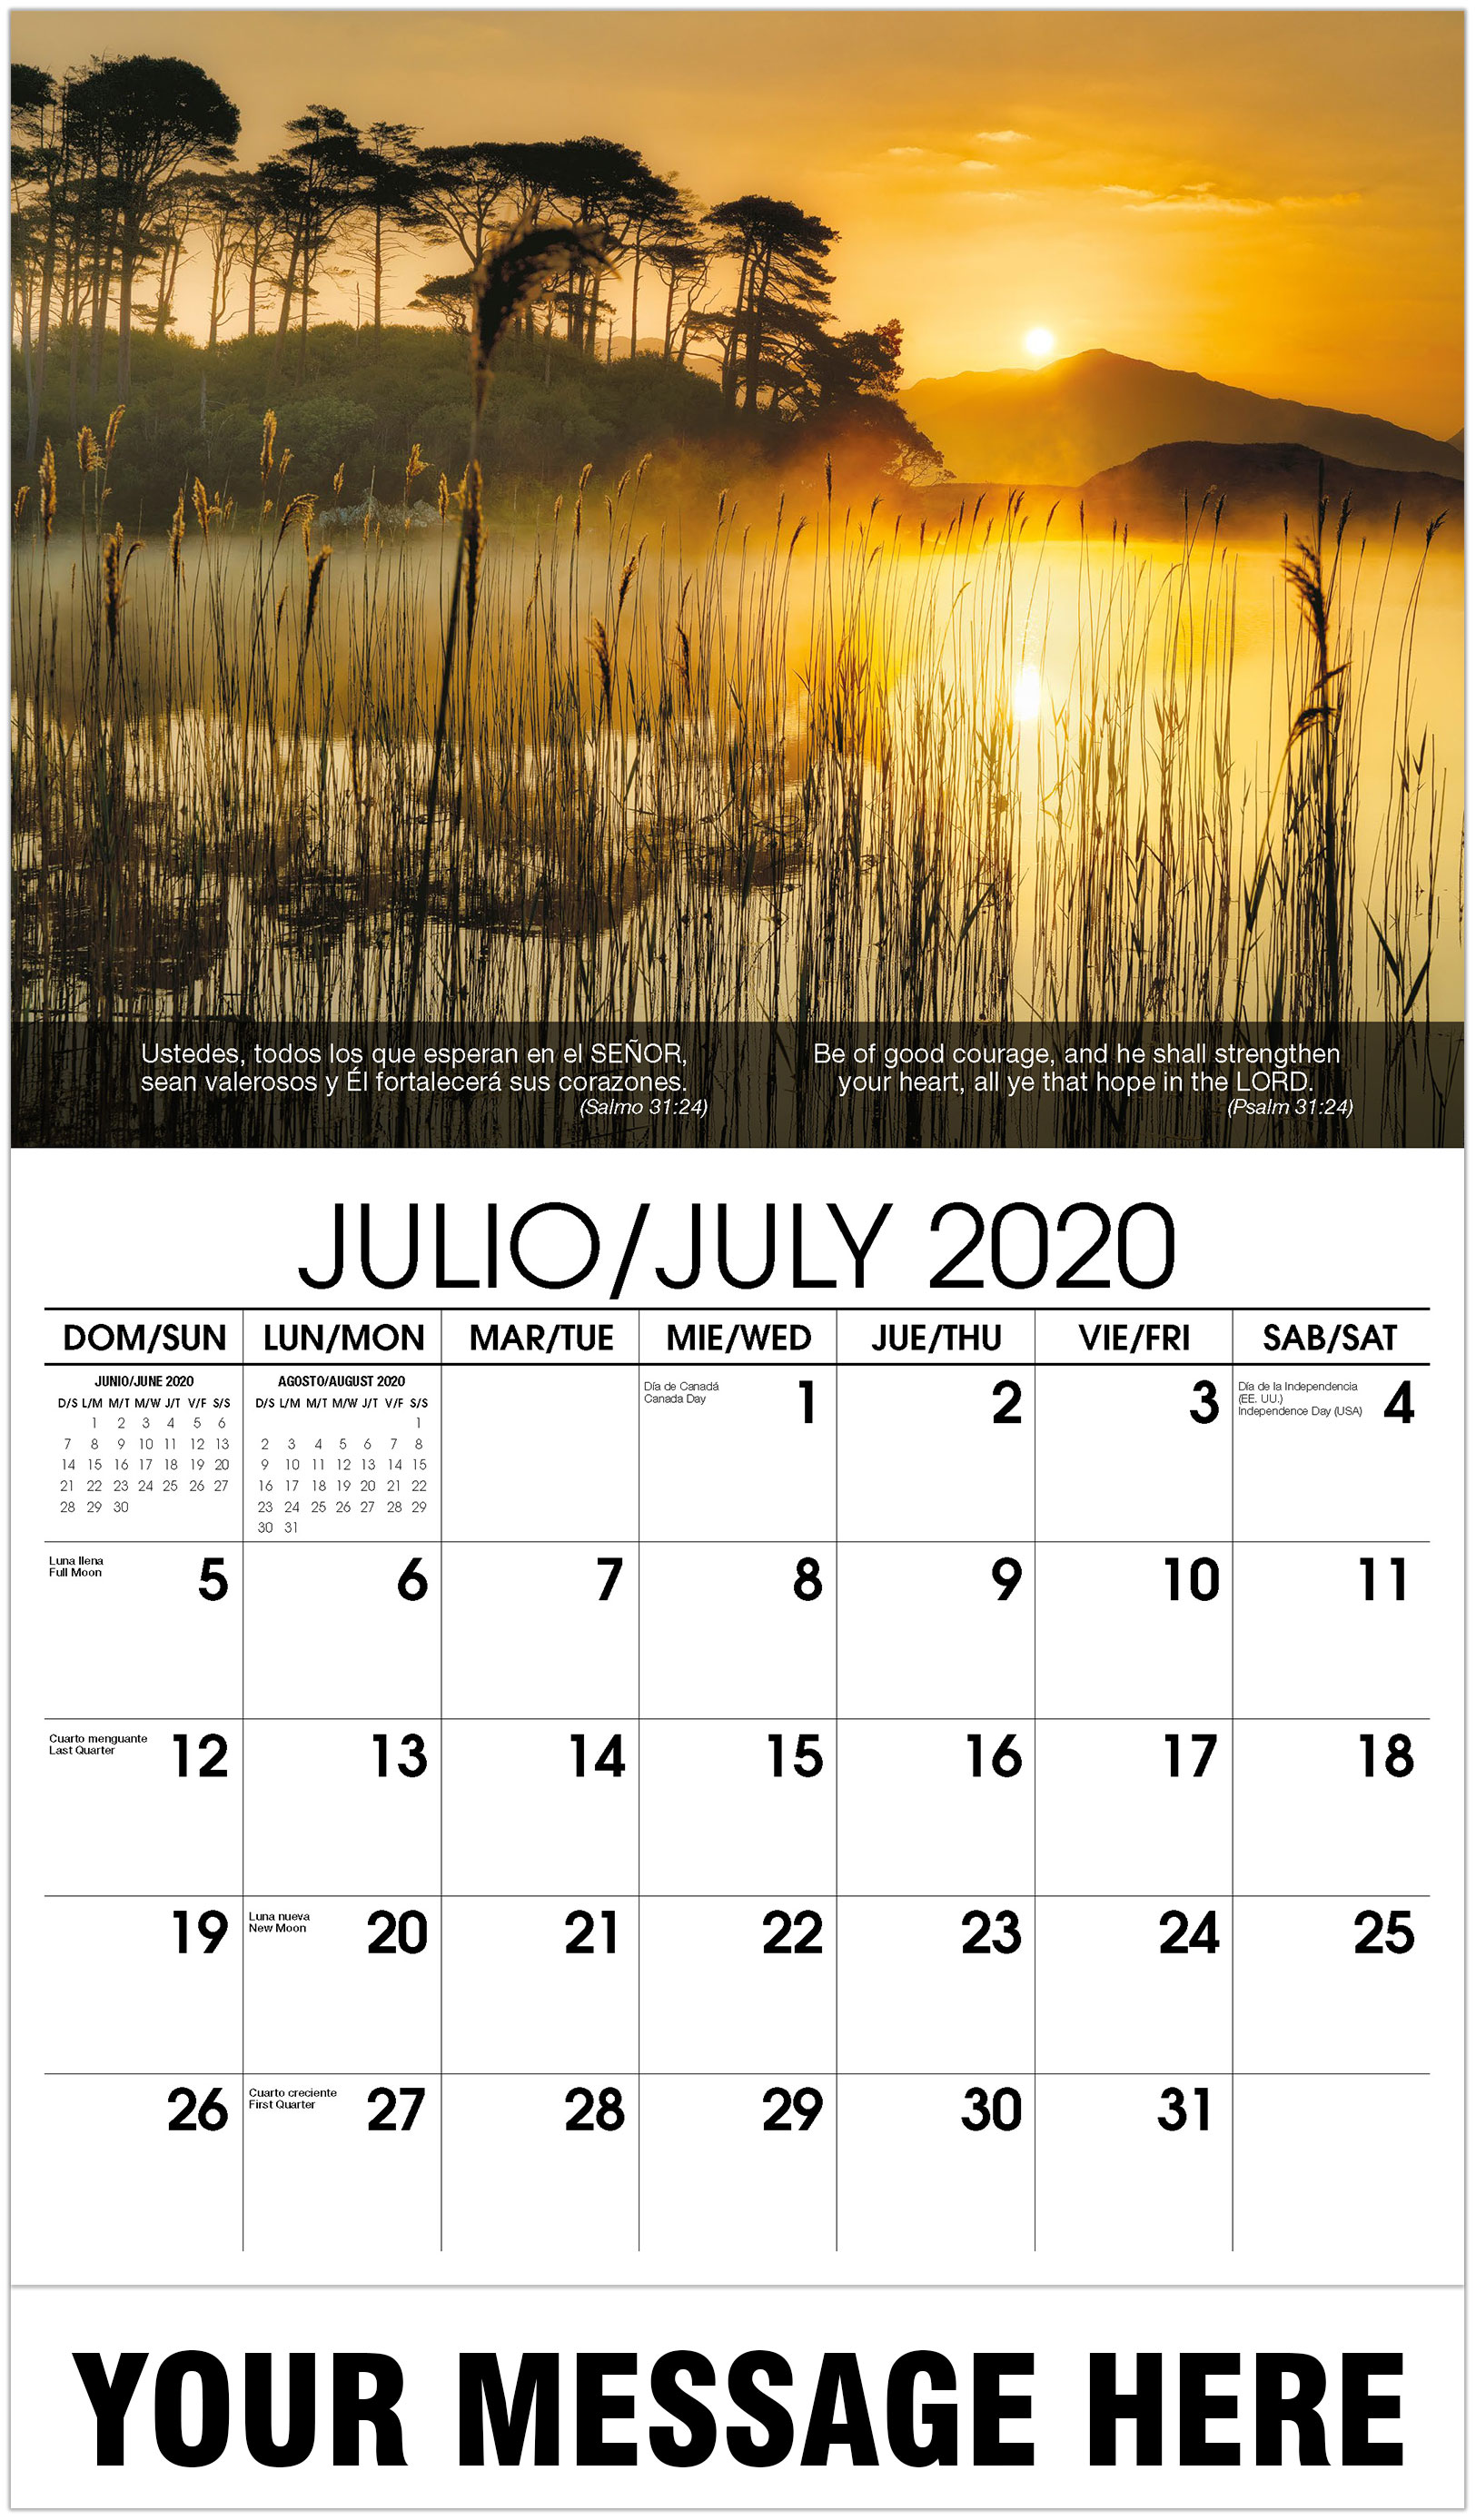 2020 Bilingual Business Advertising Calendar - Water With Reeds In Front And Sunset - July